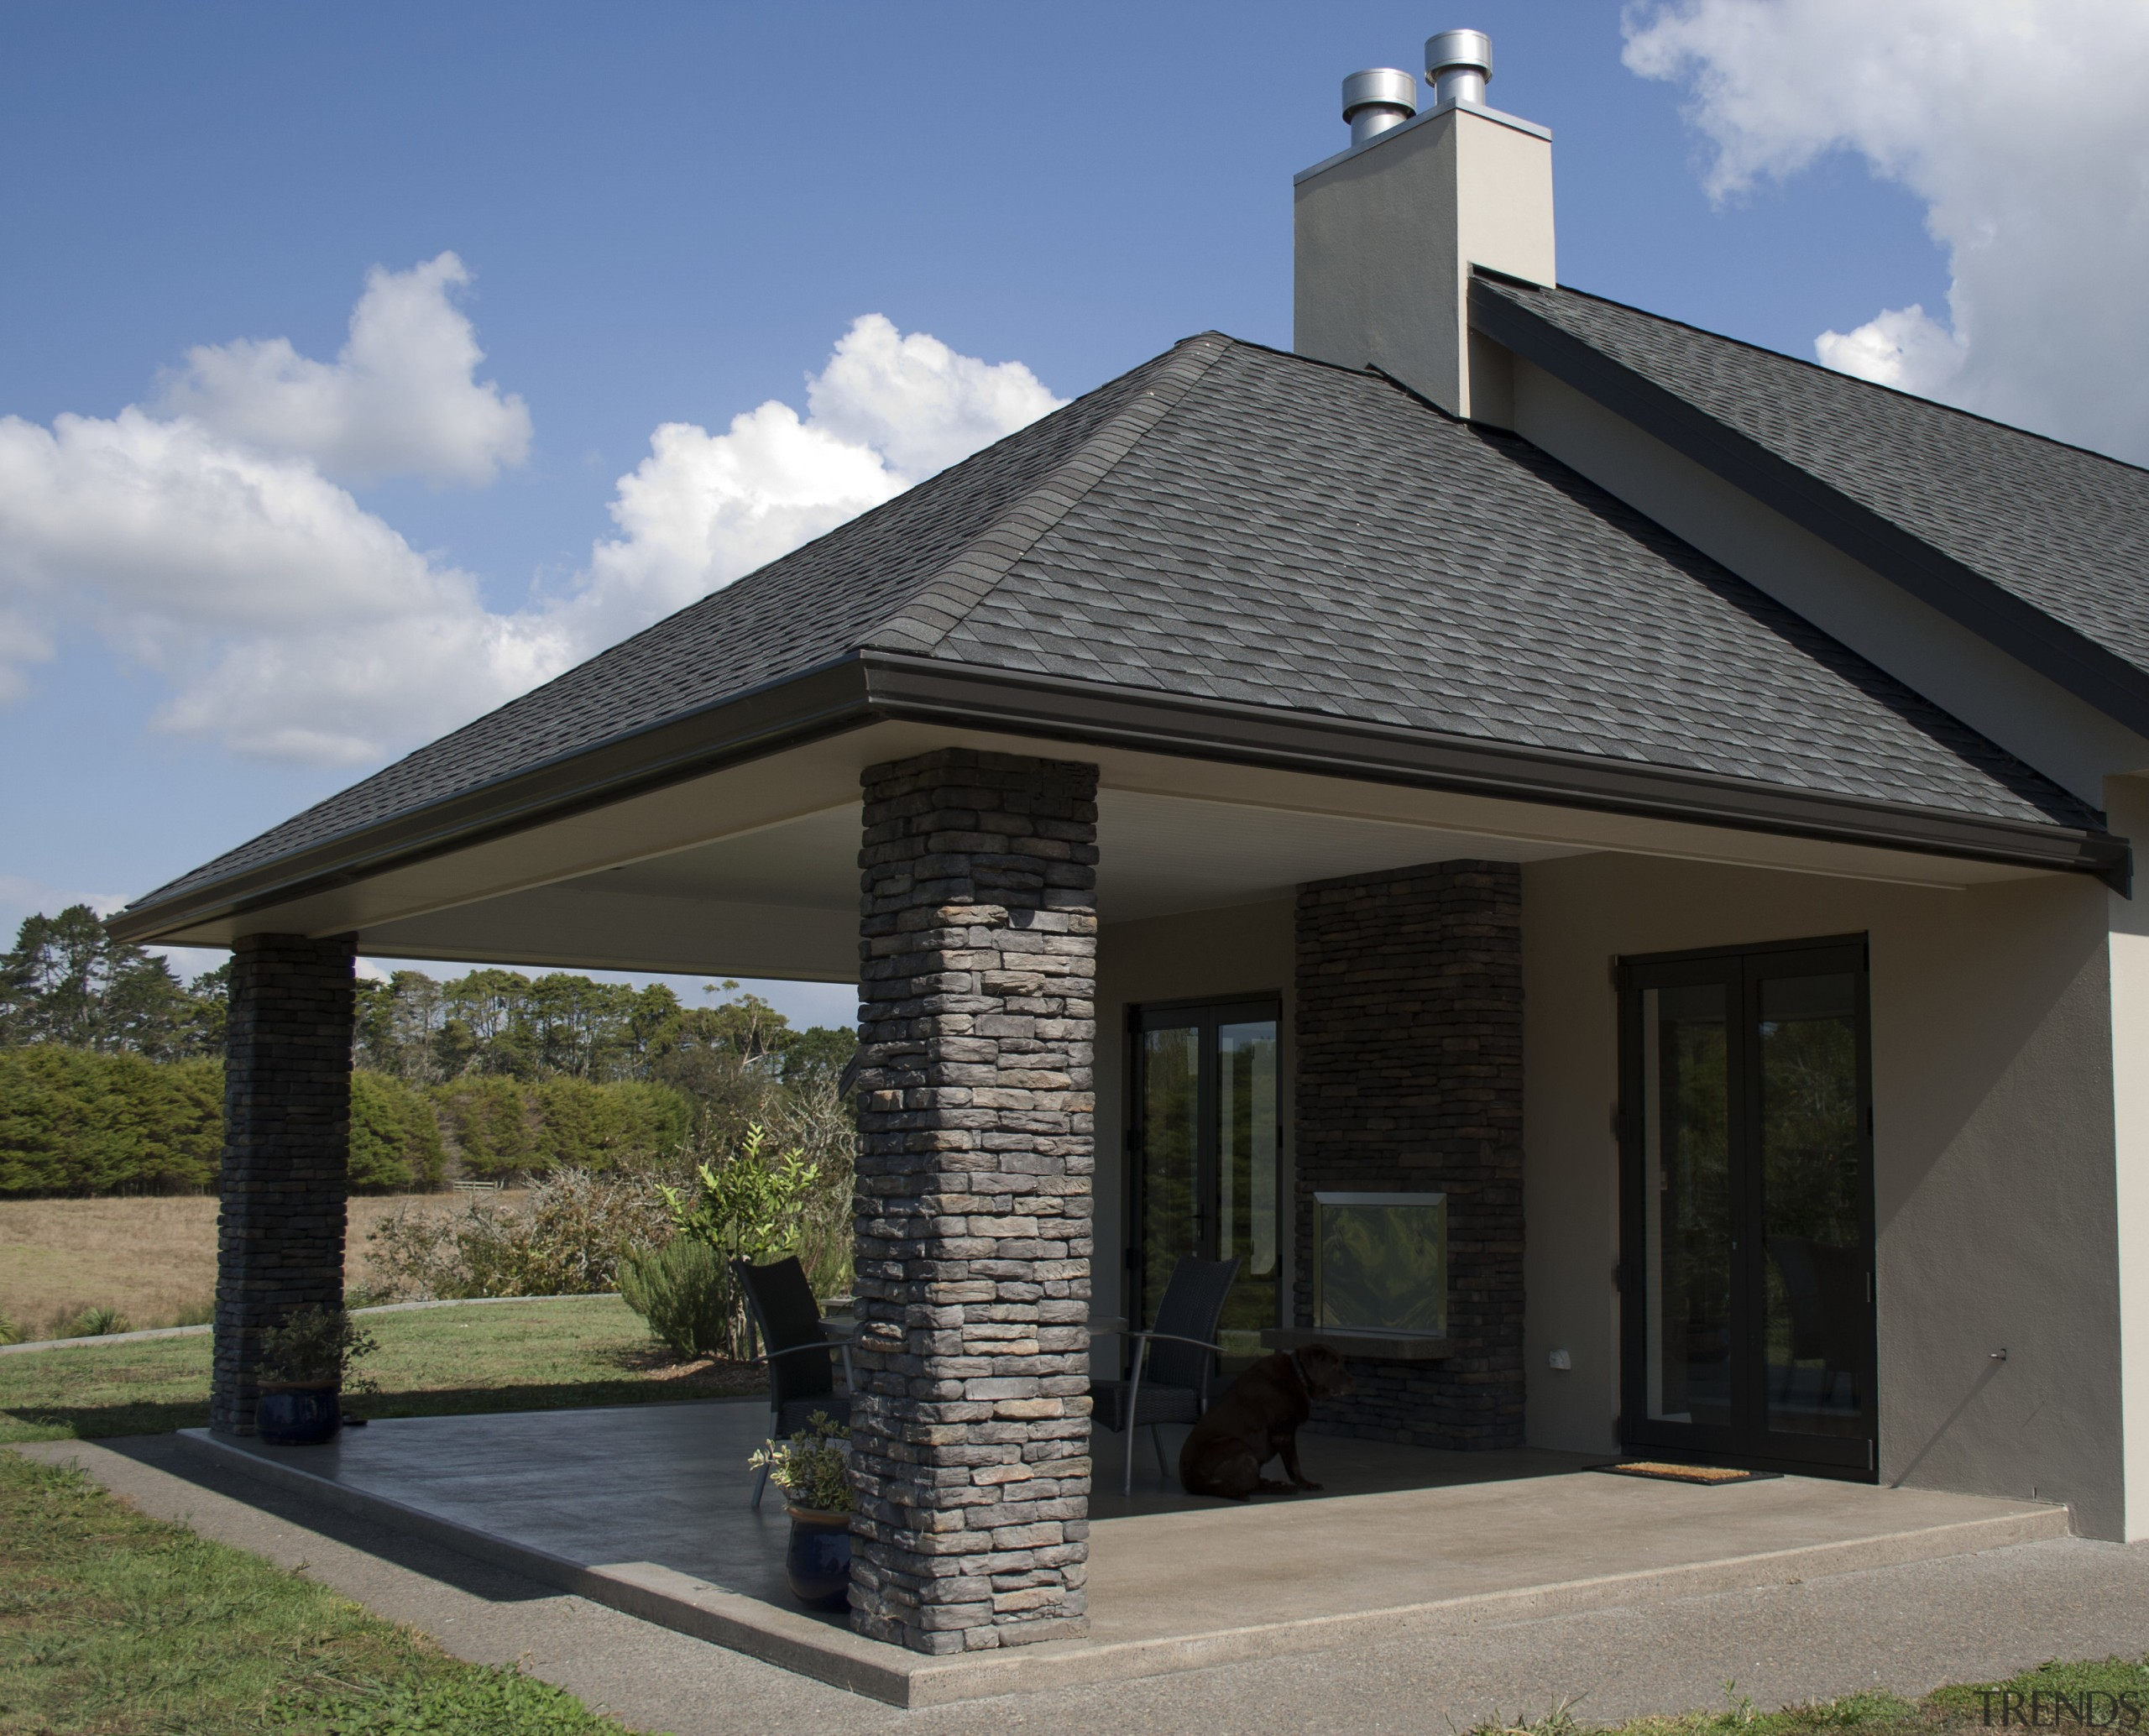 Ledgestone by Stutex Stone - Ledgestone by Stutex facade, home, house, outdoor structure, real estate, roof, siding, gray, black